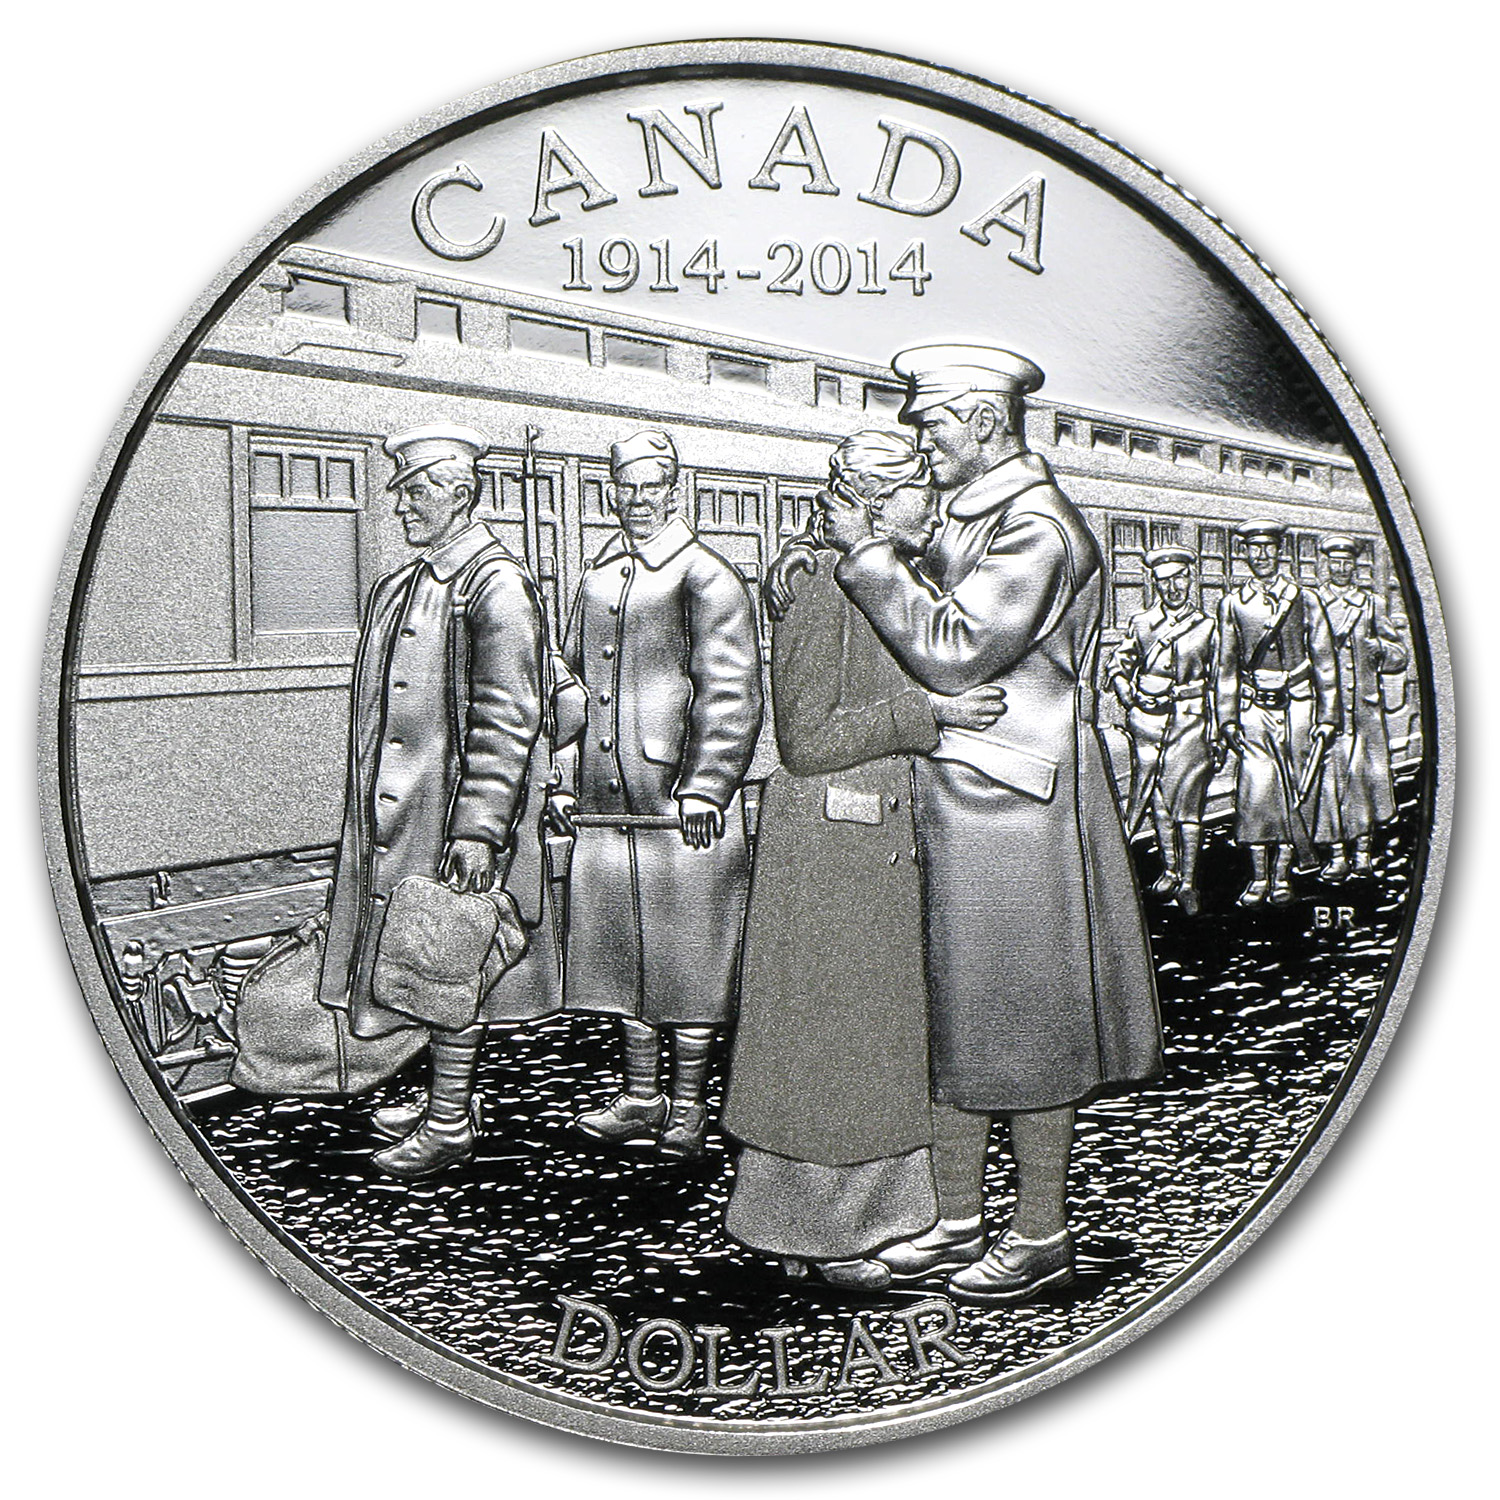 2014 Silver Proof Canadian 100th Anniv. of the Declaration of WW1